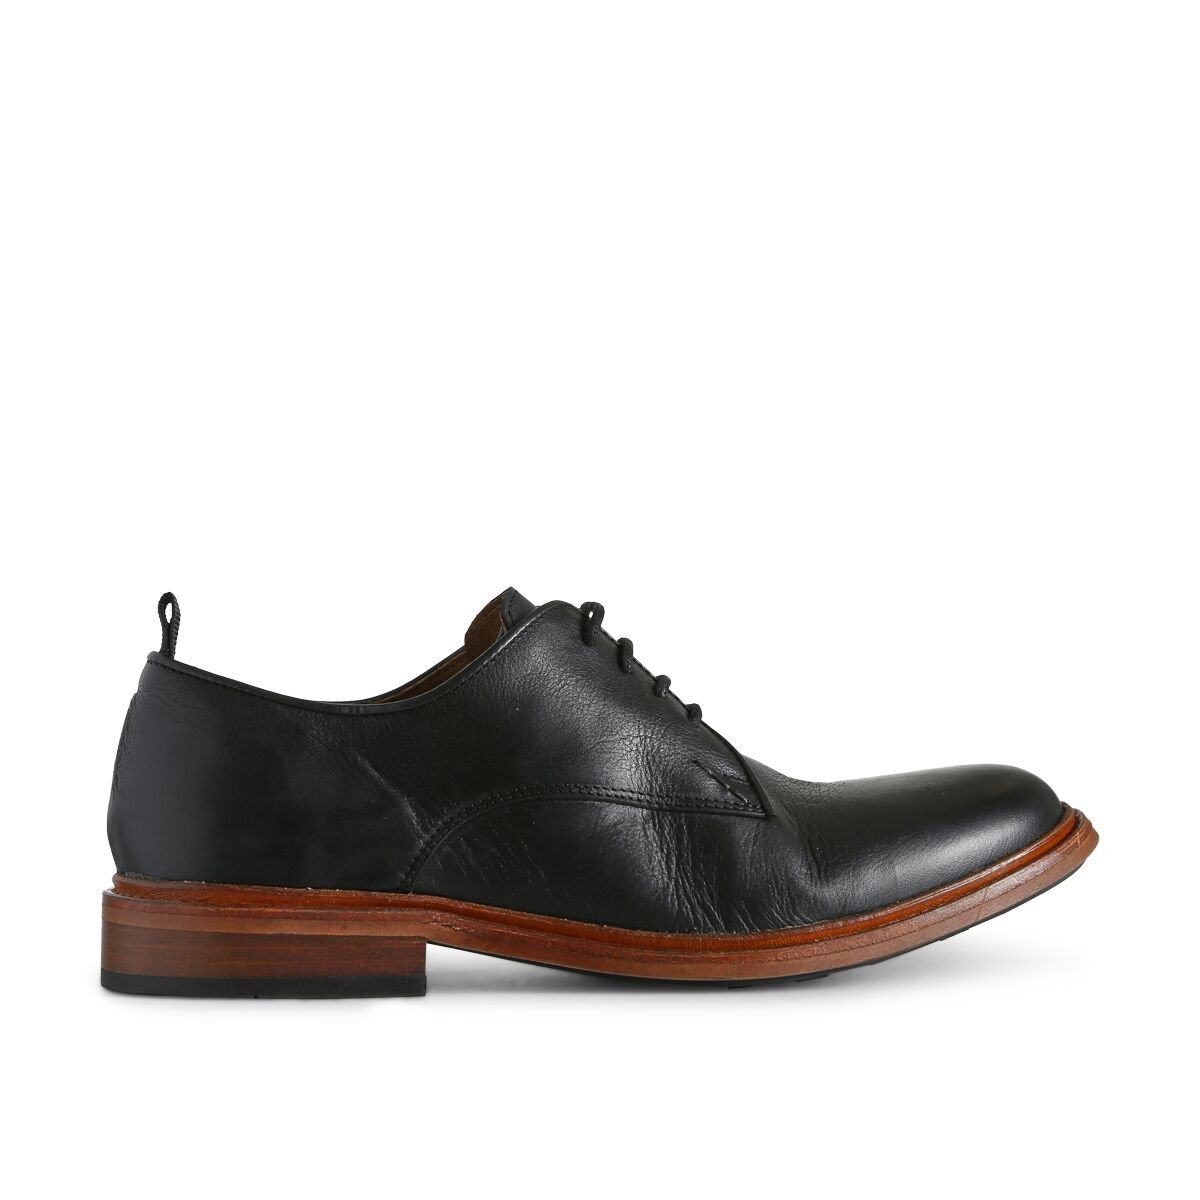 TALLA 43 EU. Shoe The Bear Nate L, Zapatos de Cordones Derby para Hombre